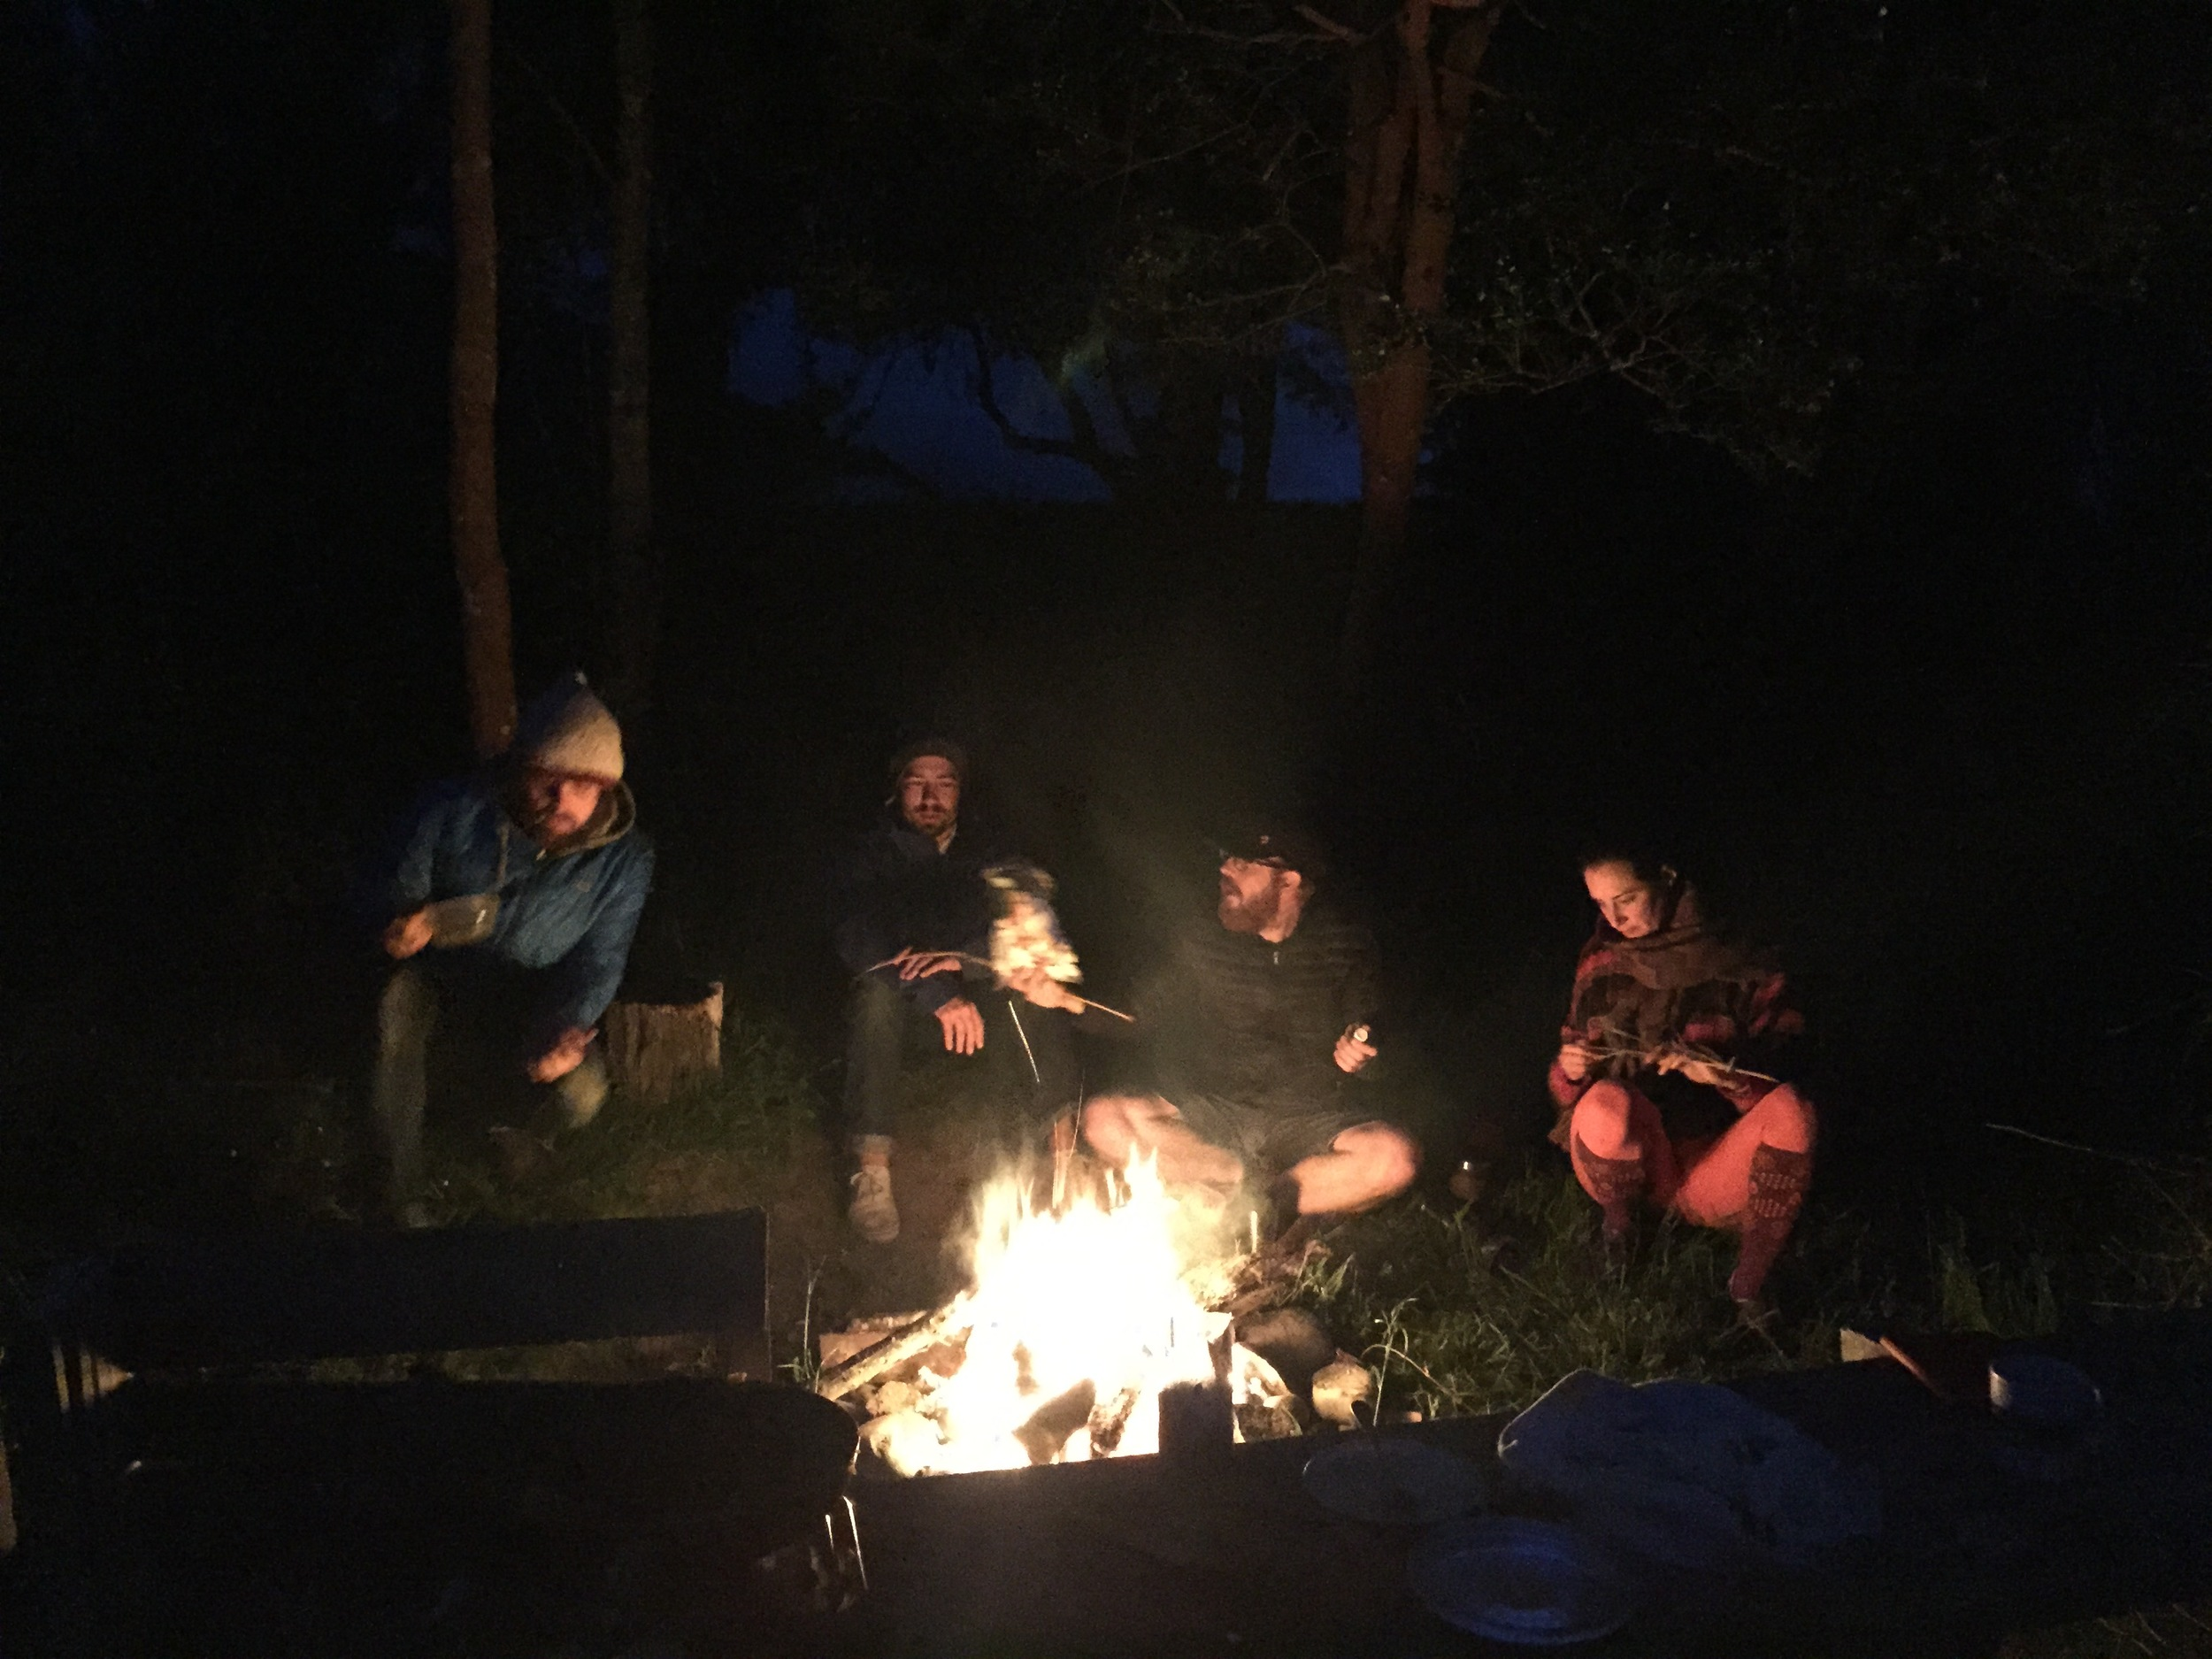 How we spend most of our nights in Patagonia.